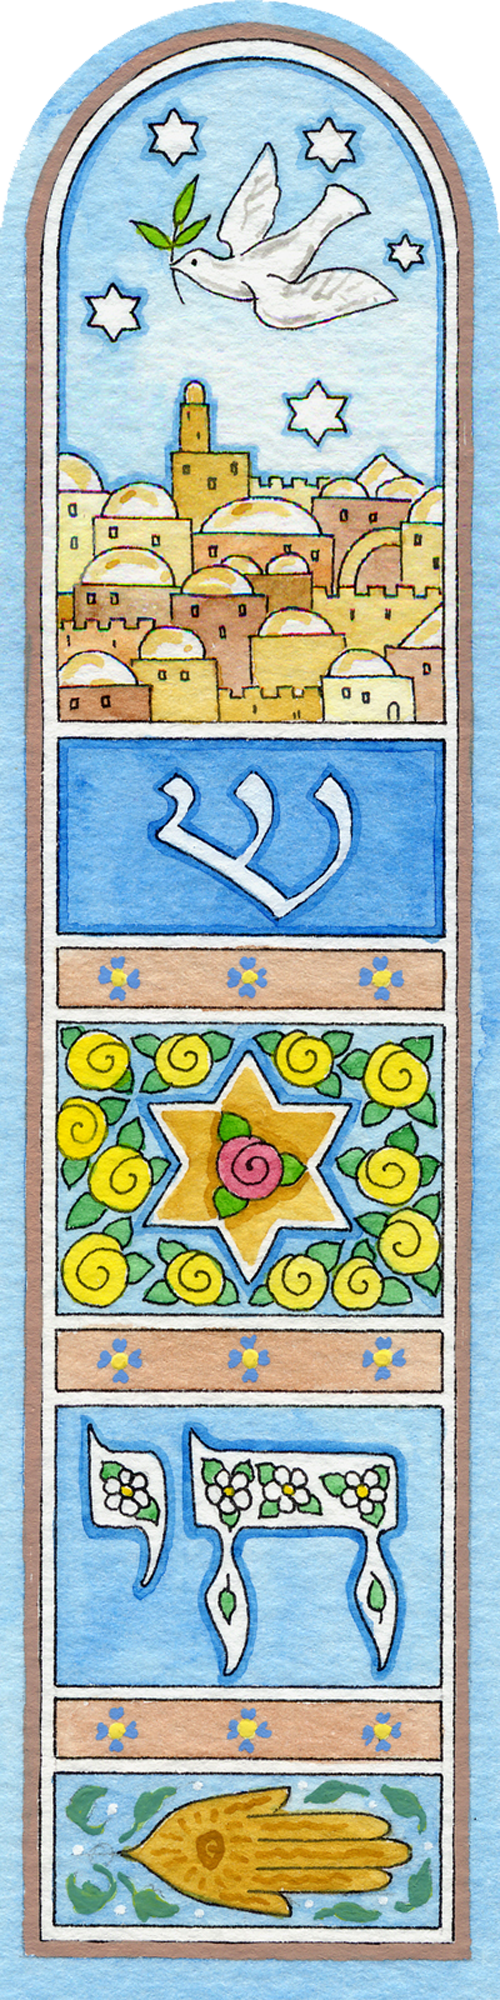 "Mickie Caspi's Beautiful Judaic Designs Are Richly Colored With Fine Details That Shine Through The Acrylic Mezuzah. Double Stick Tape Attaches Easily To The Back So There Is No Hammer Or Nail To Damage The Mezzuzah Or Door! The Mezzuzah Is Approximately 1"" Wide X 4"" Tall."